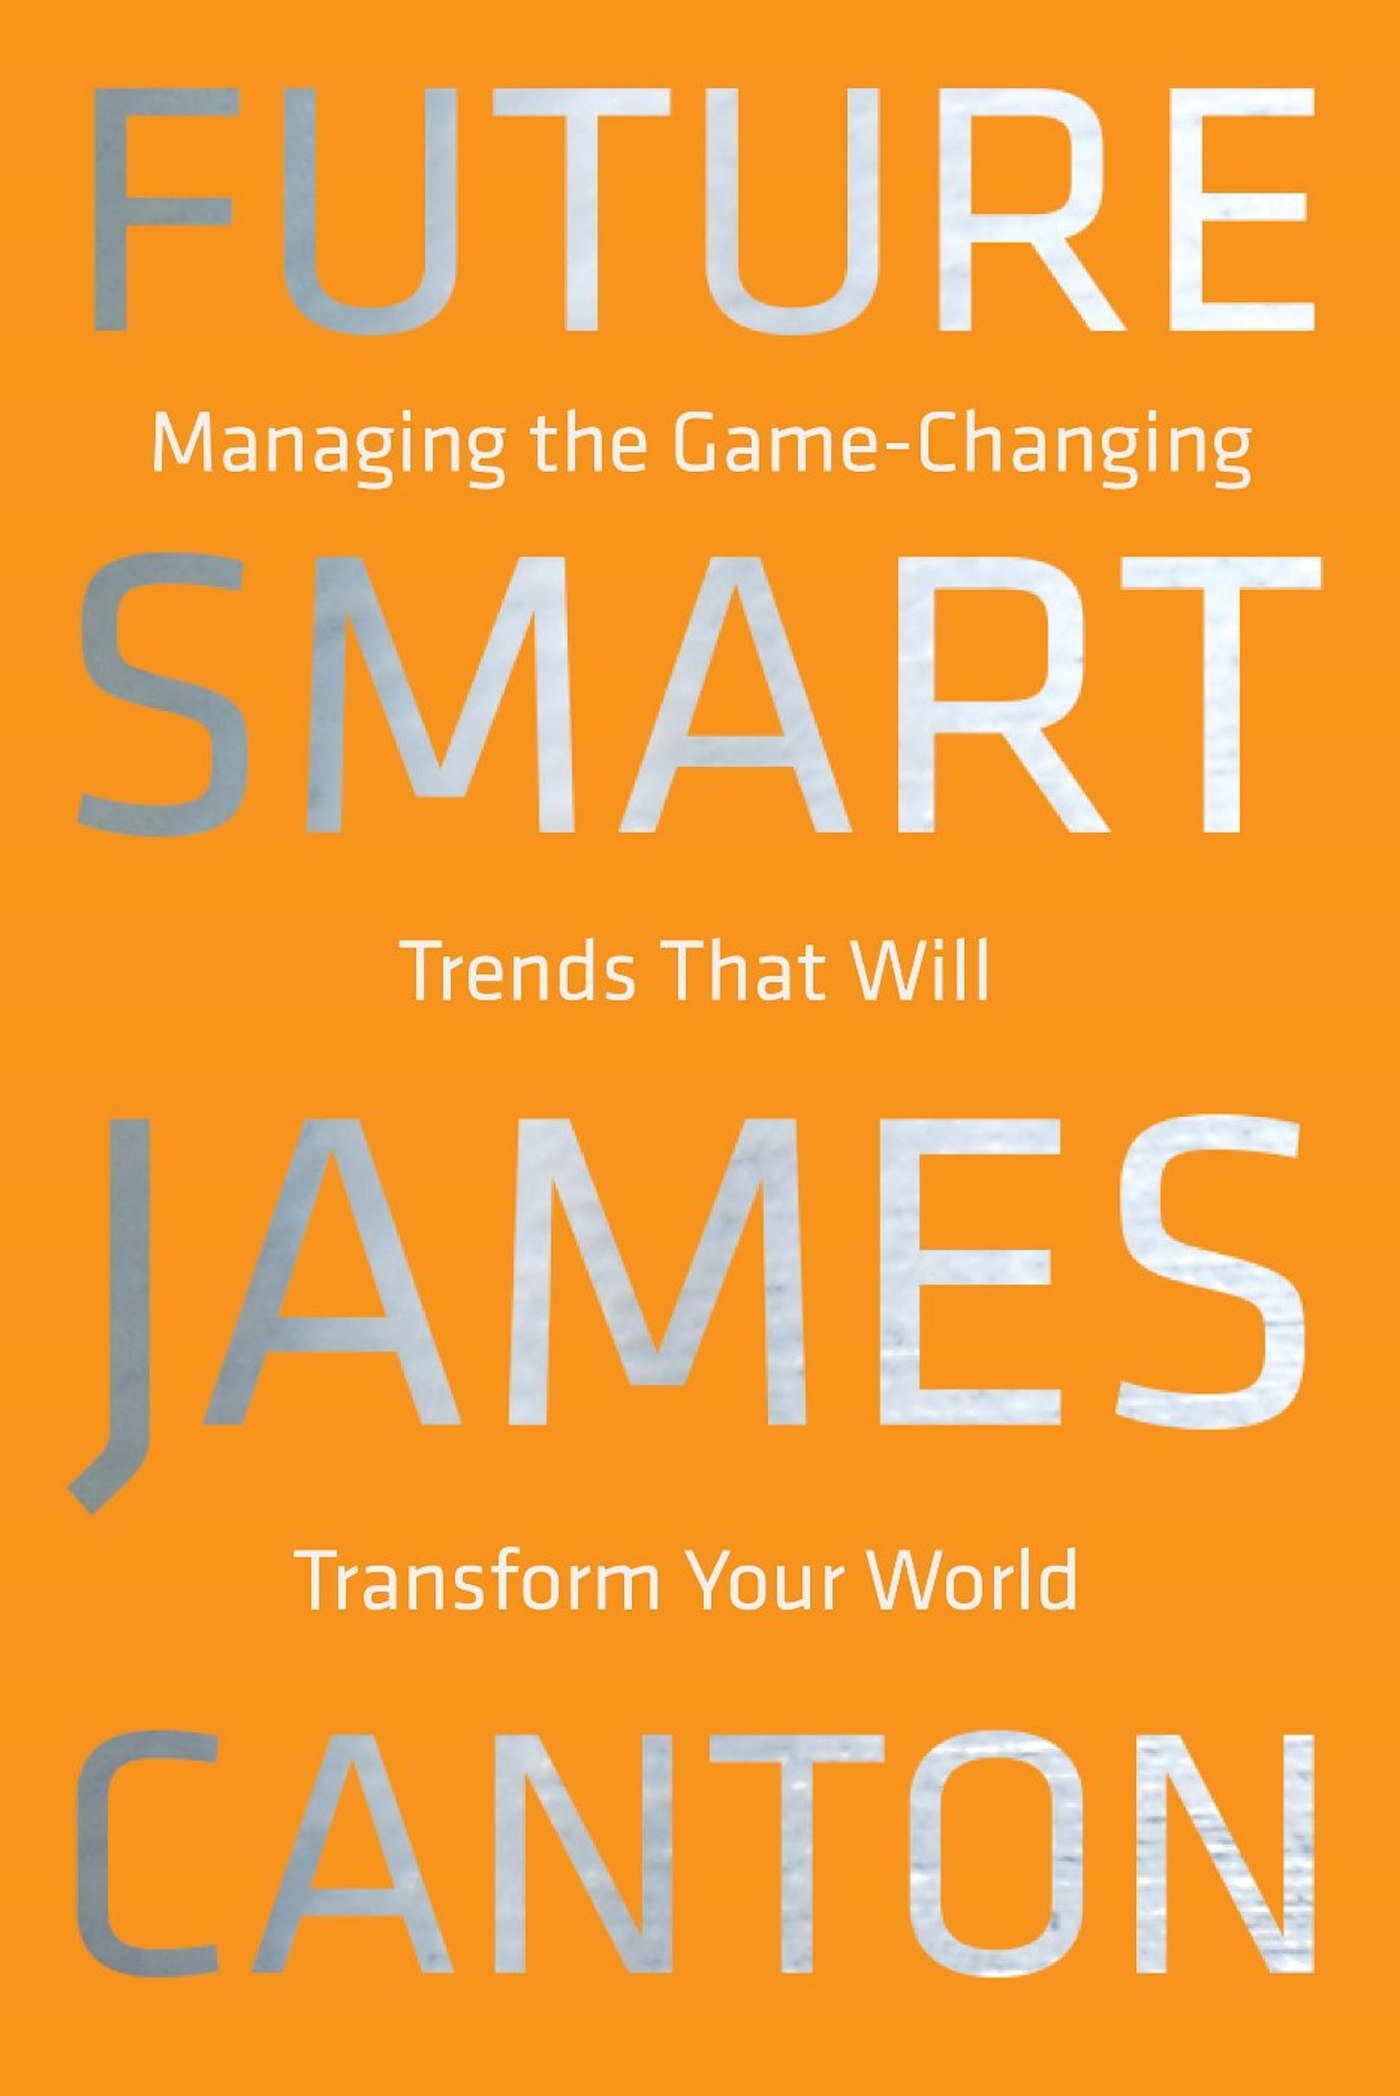 Download Ebook Future Smart by James Canton Pdf